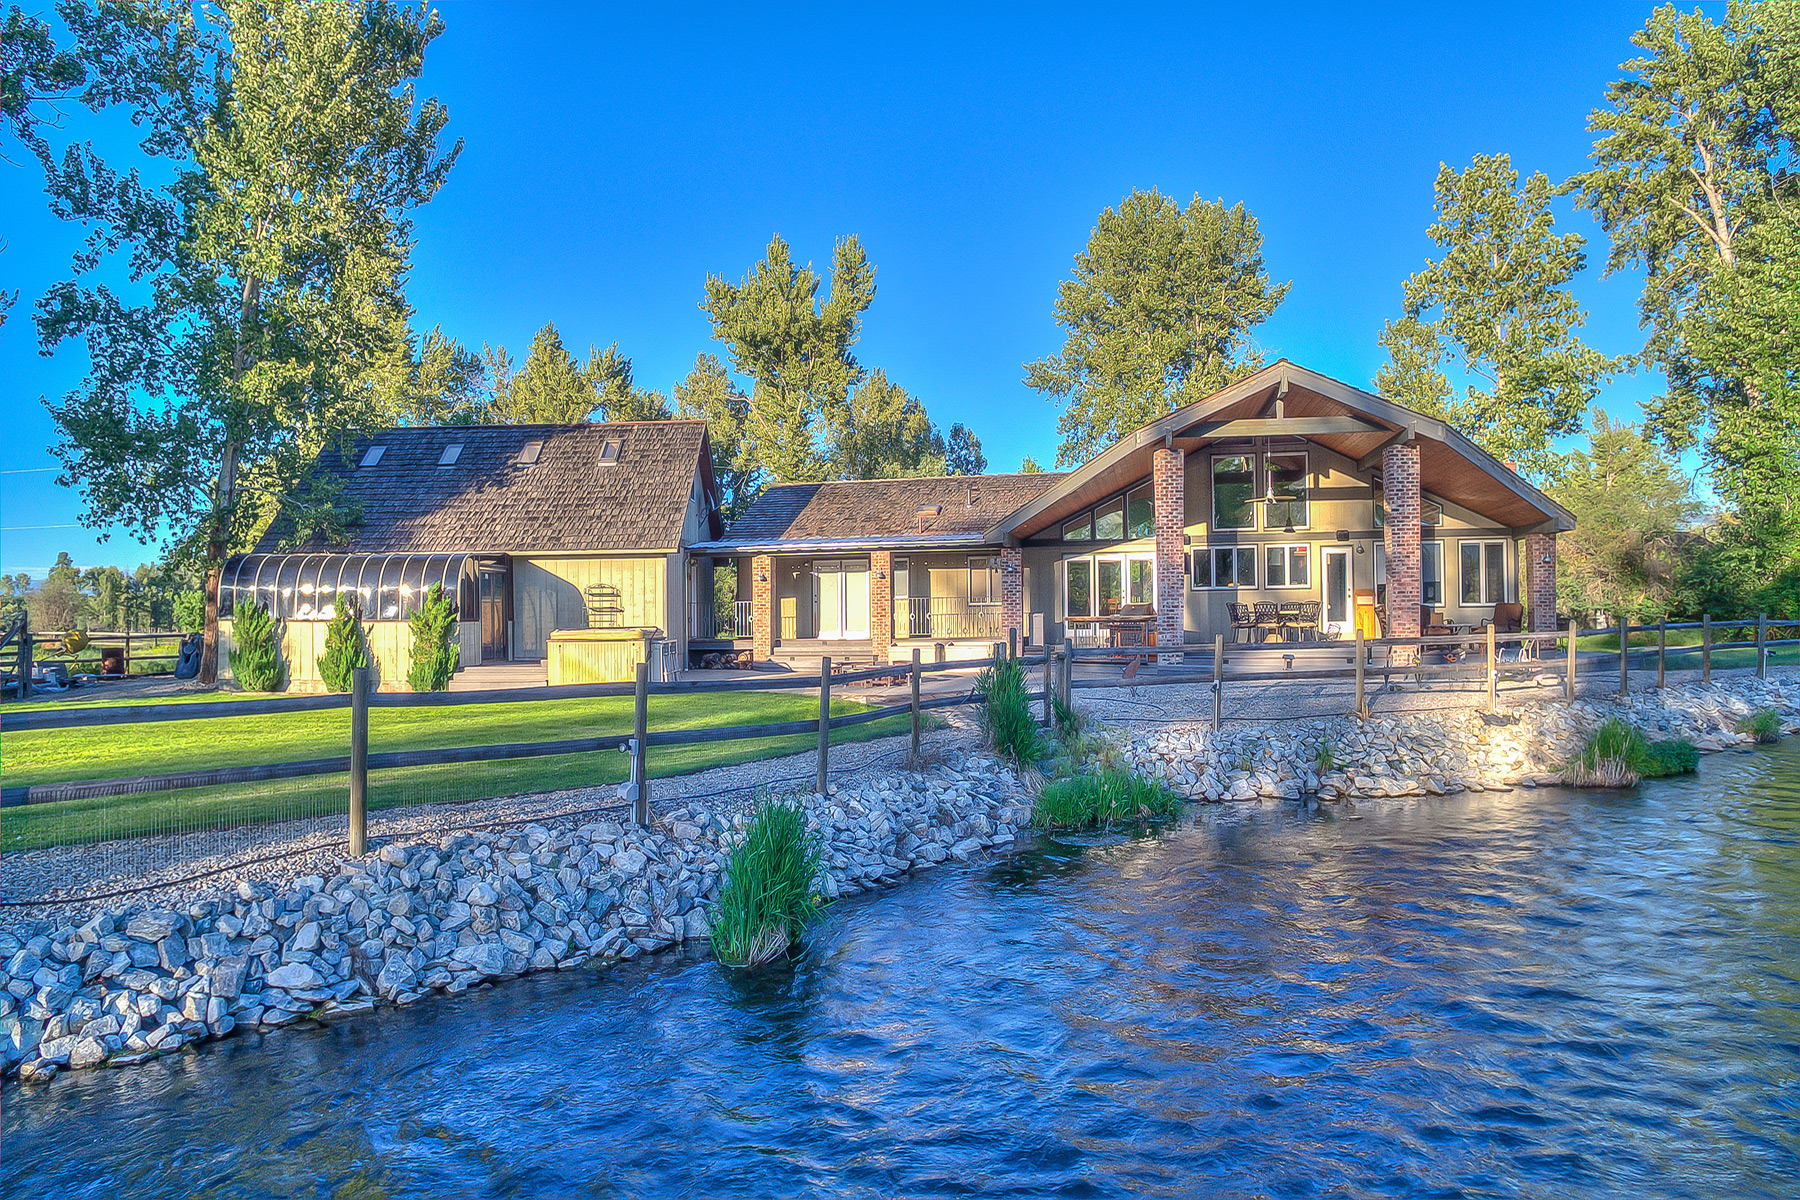 Single Family Home for Sale at 162 Flanagin Stevensville, Montana 59870 United States